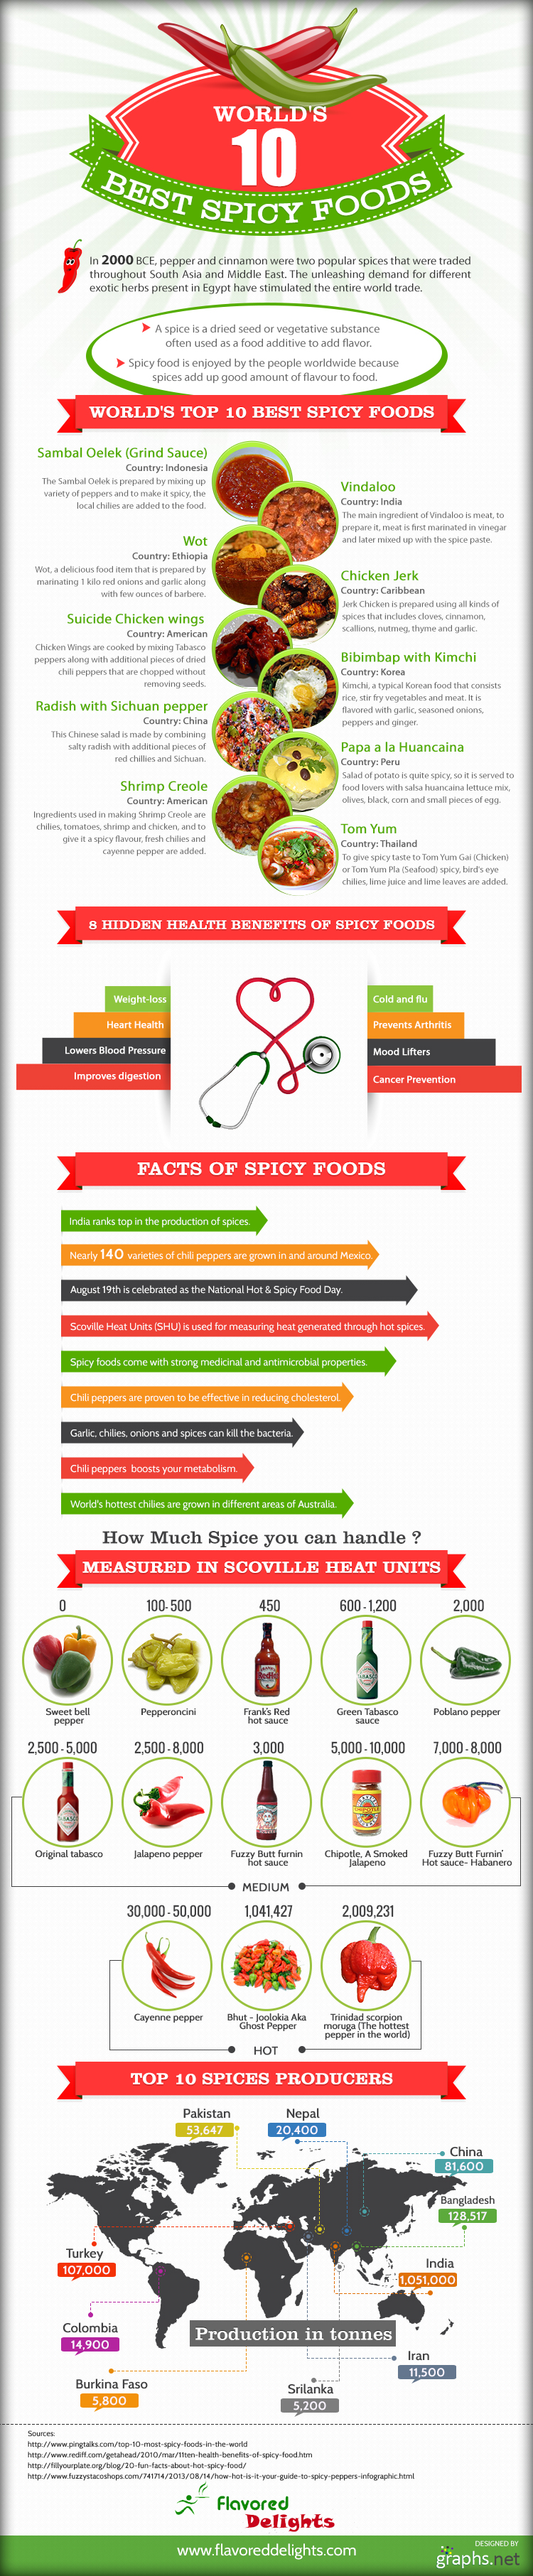 spicy foods inforgraphic - The World's Most Favorite Spiciest Foods